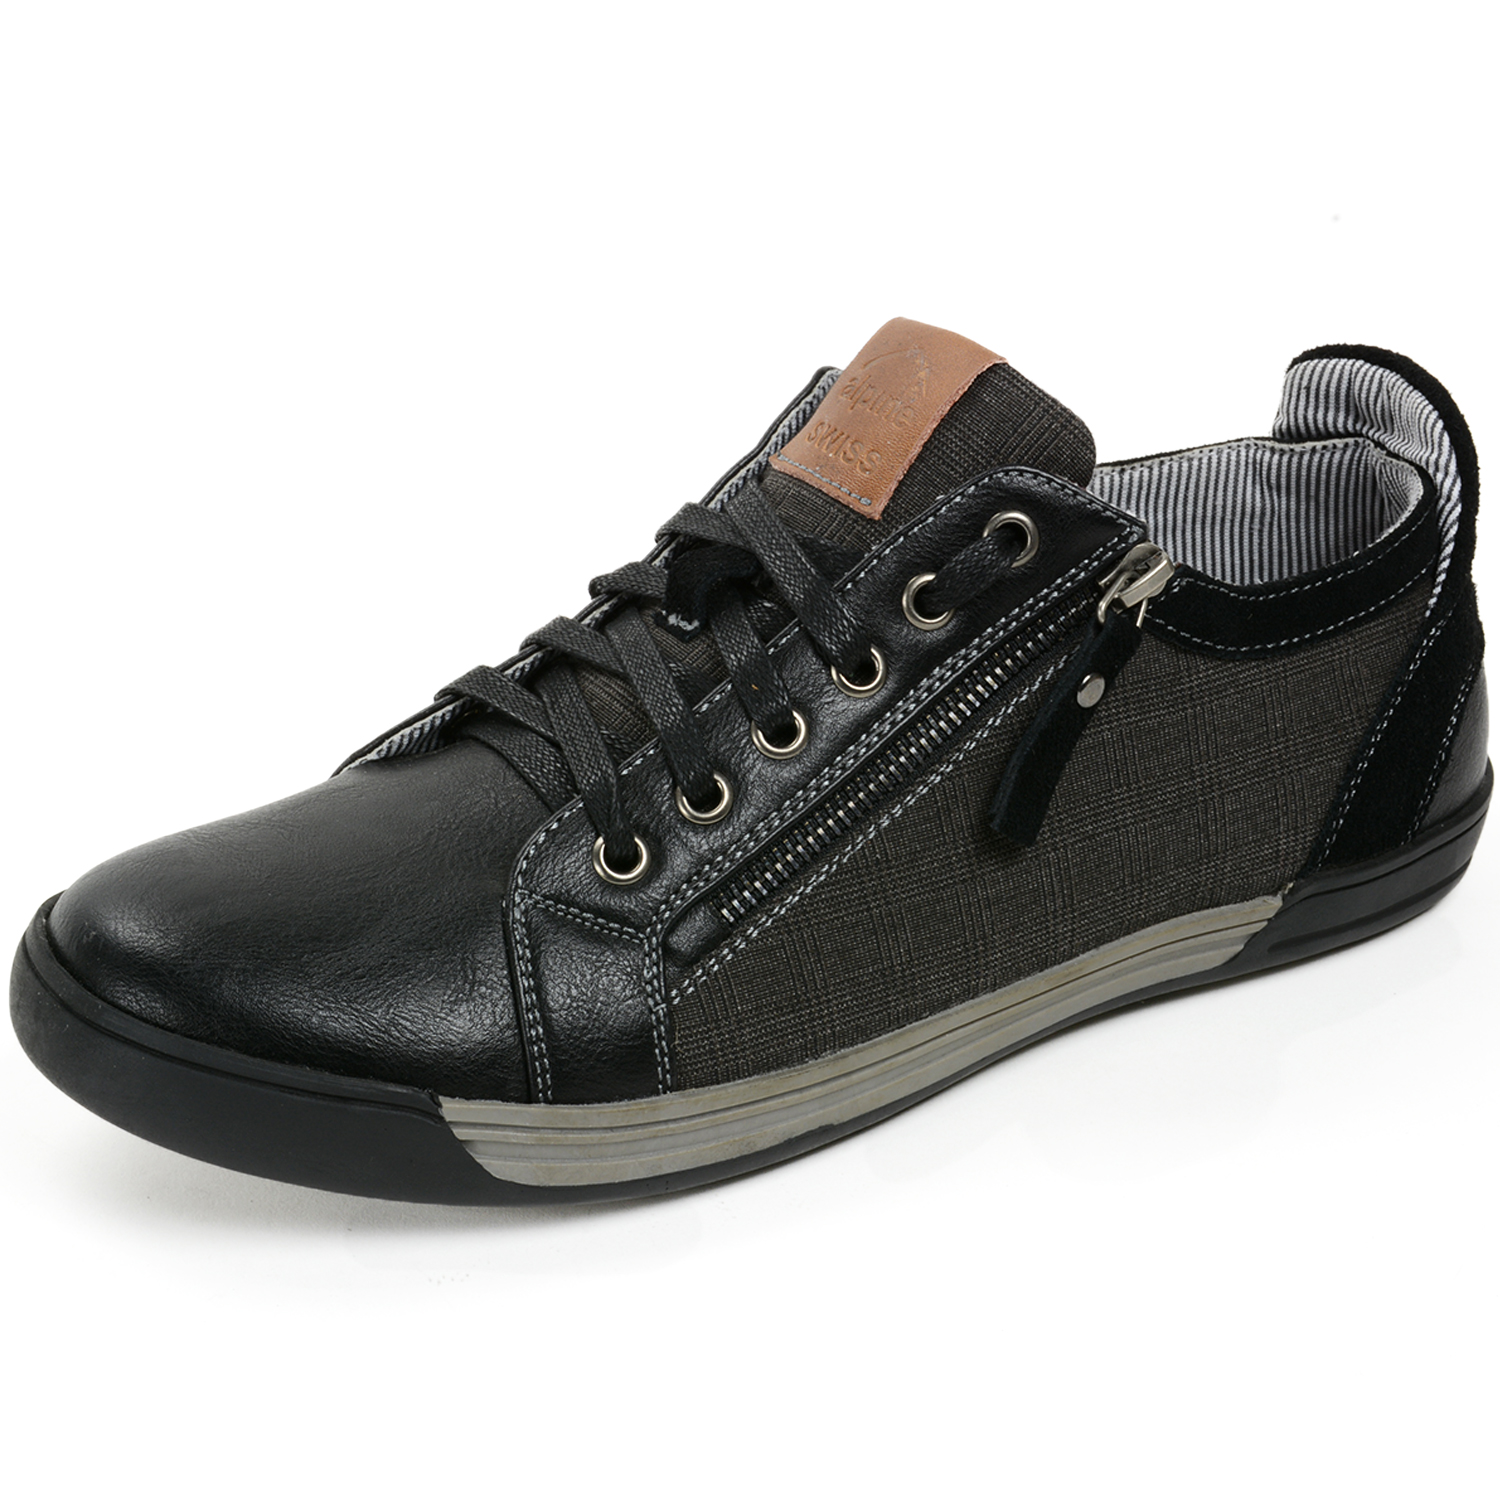 alpine swiss fabian mens casual sneakers low top lace up